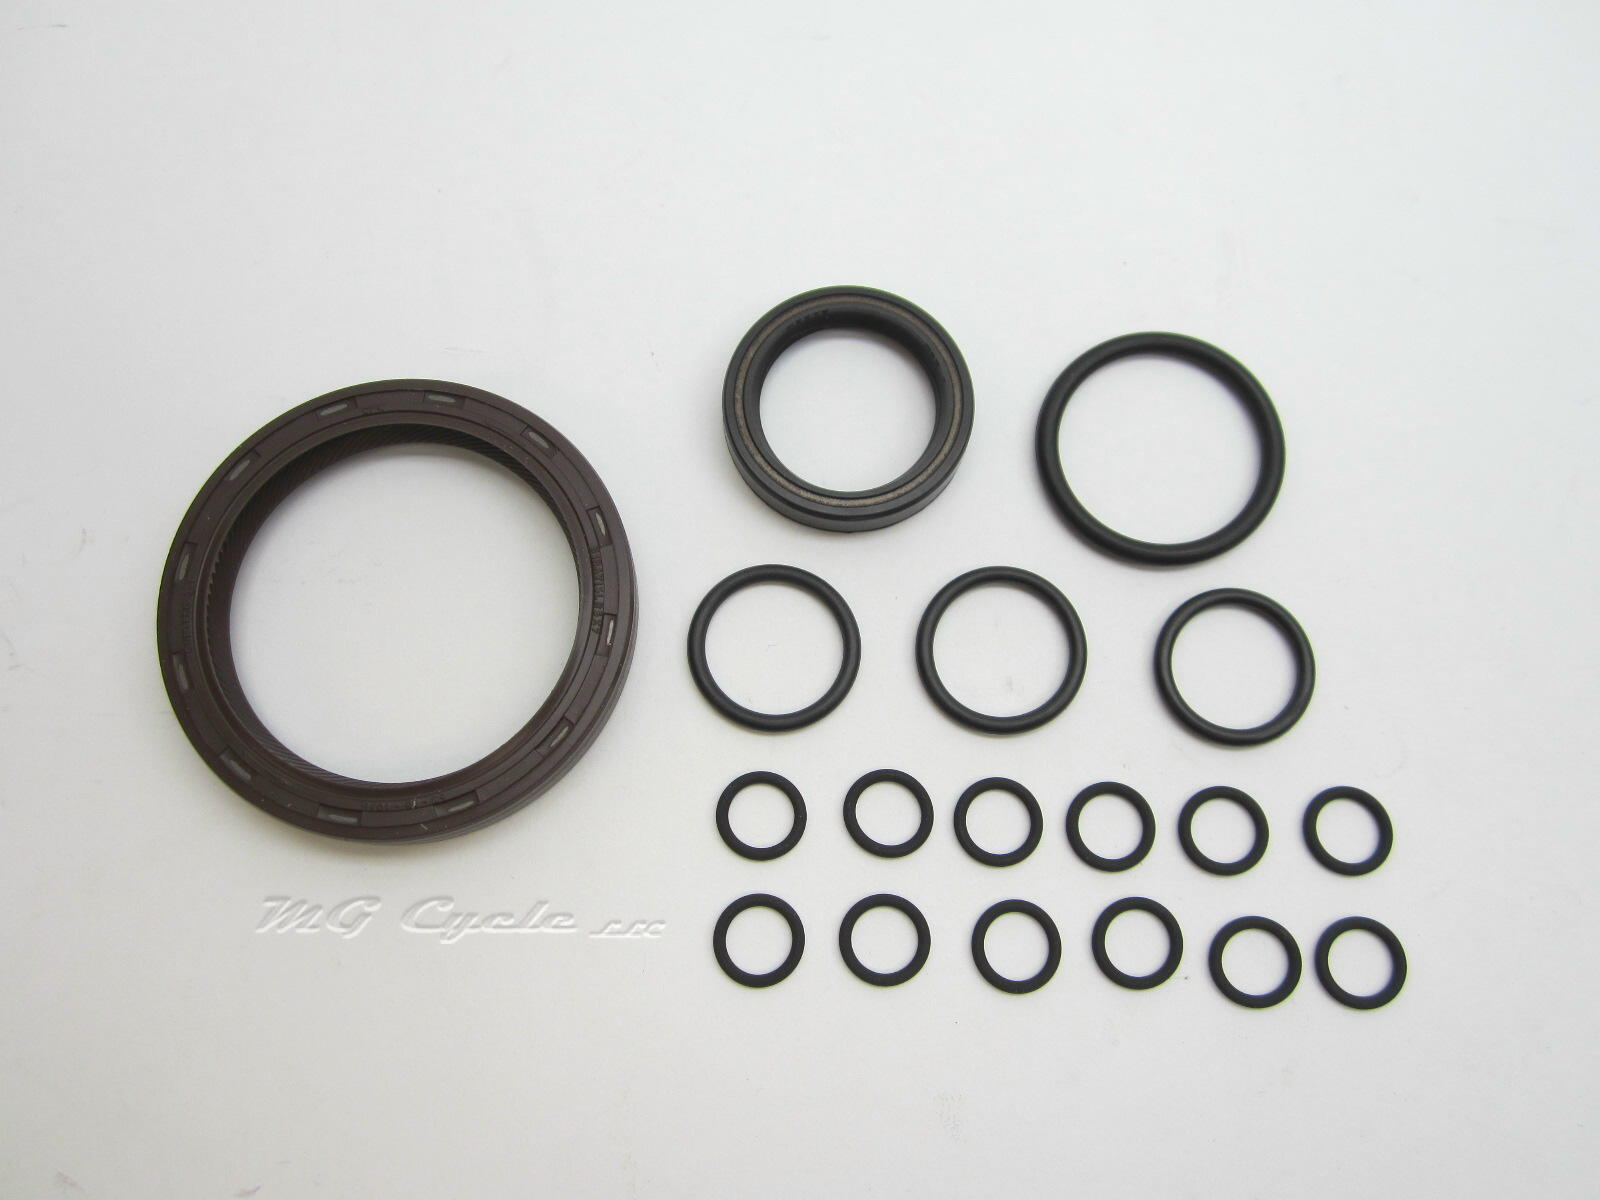 engine seals and orings set, Bosch and Ducati alternator models